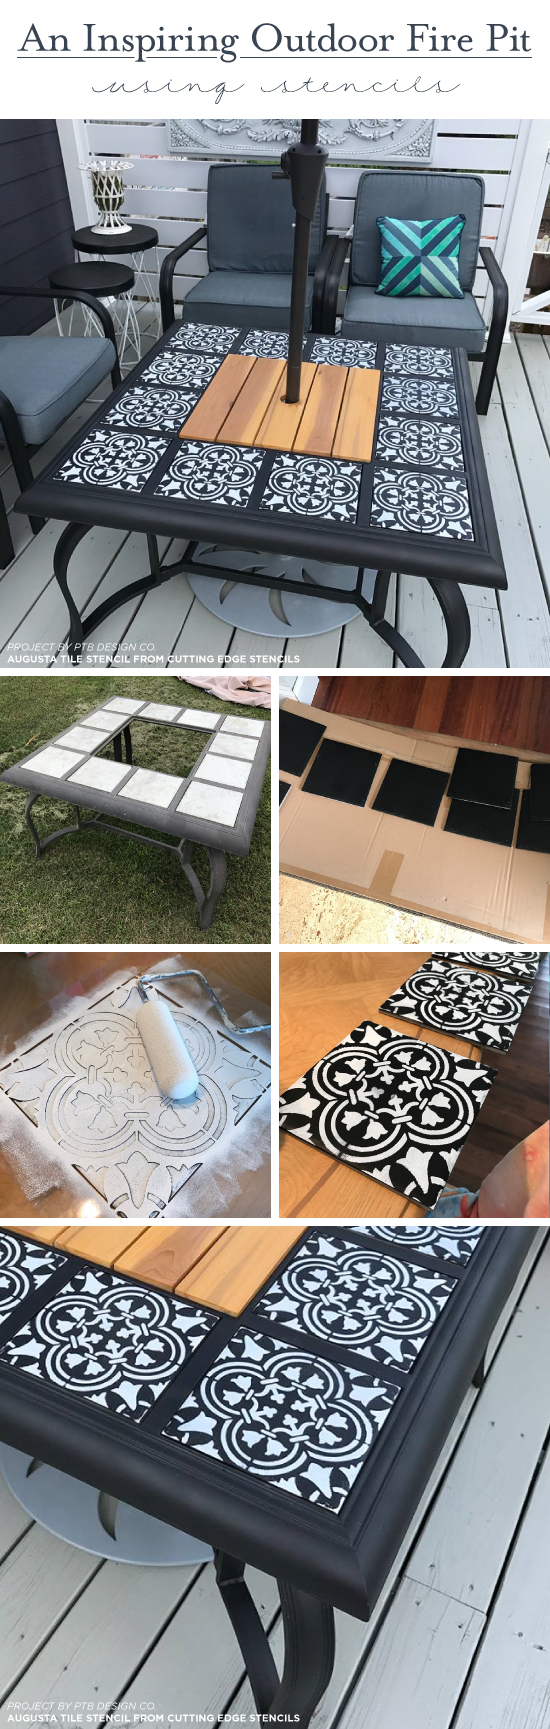 Cutting Edge Stencils shares how to makeover an old outdoor fire pit using the Augusta Tile pattern. http://www.cuttingedgestencils.com/augusta-tile-stencil-design-patchwork-tiles-stencils.html